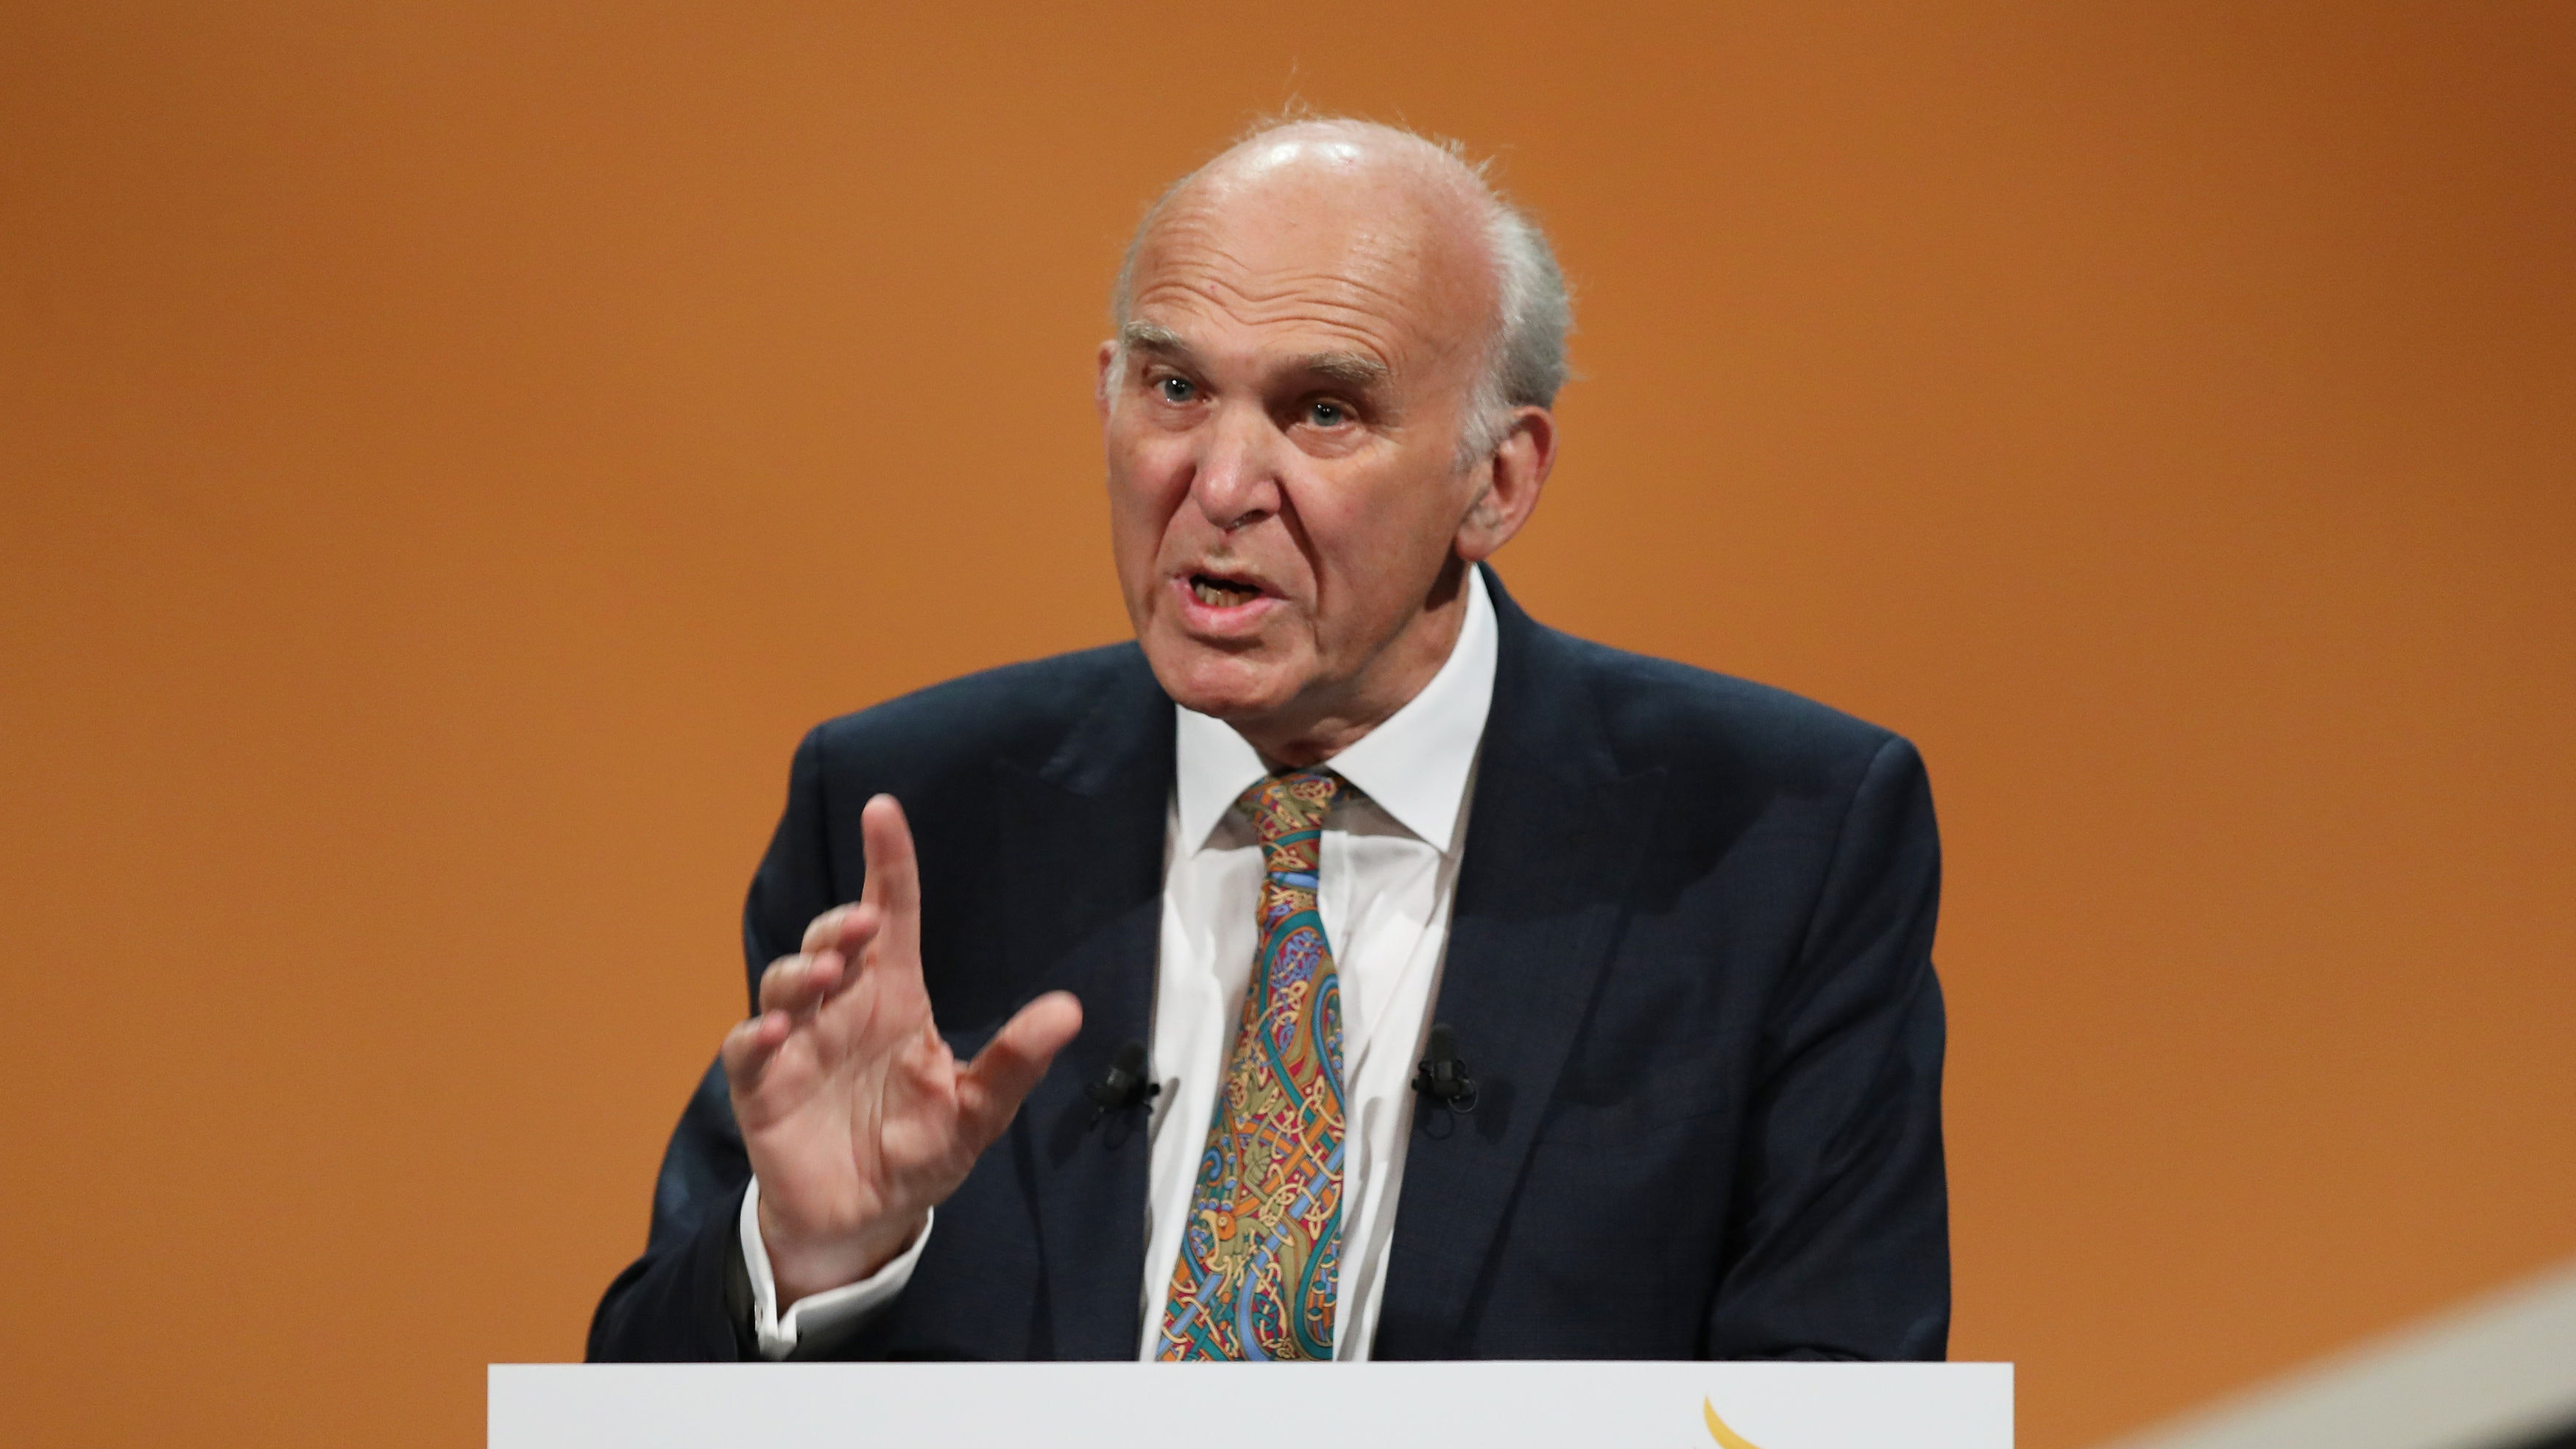 Brexit: Backlash for Cable over 'white nostalgia' comment